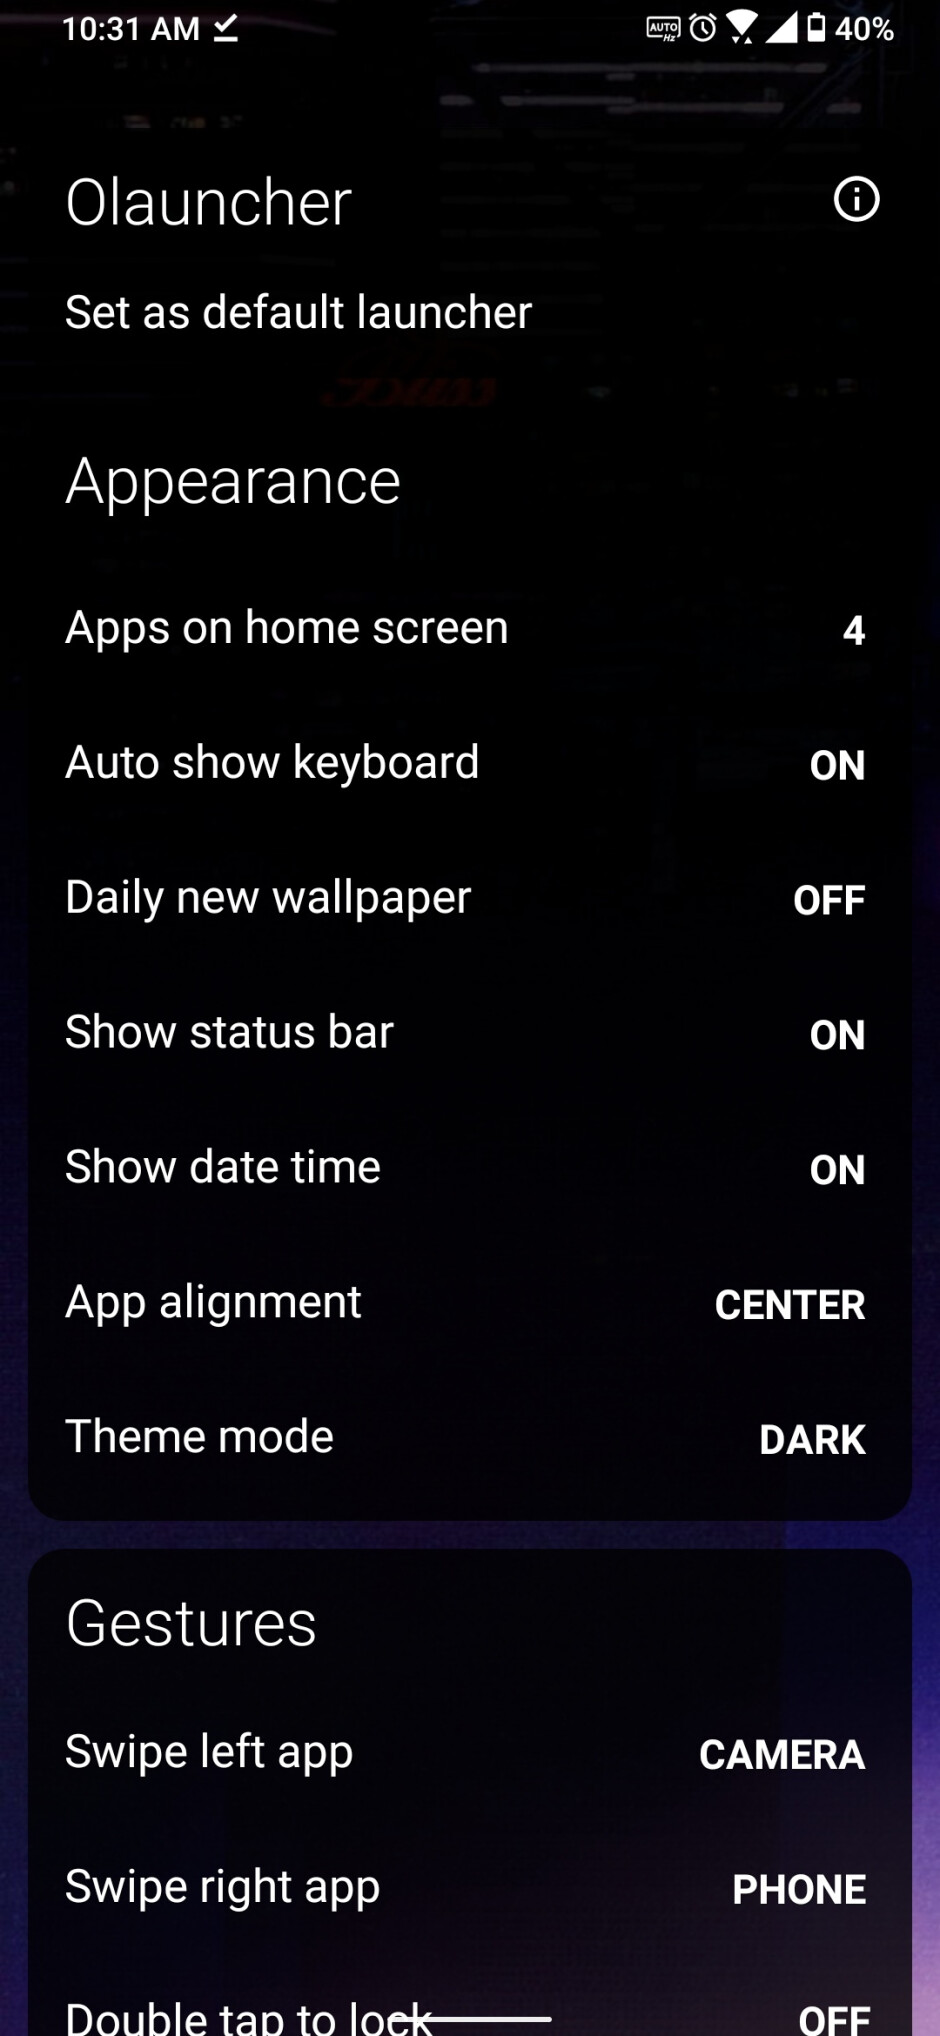 The Olauncher settings screen - Android Refresh Tuesdays – Minimalist theme